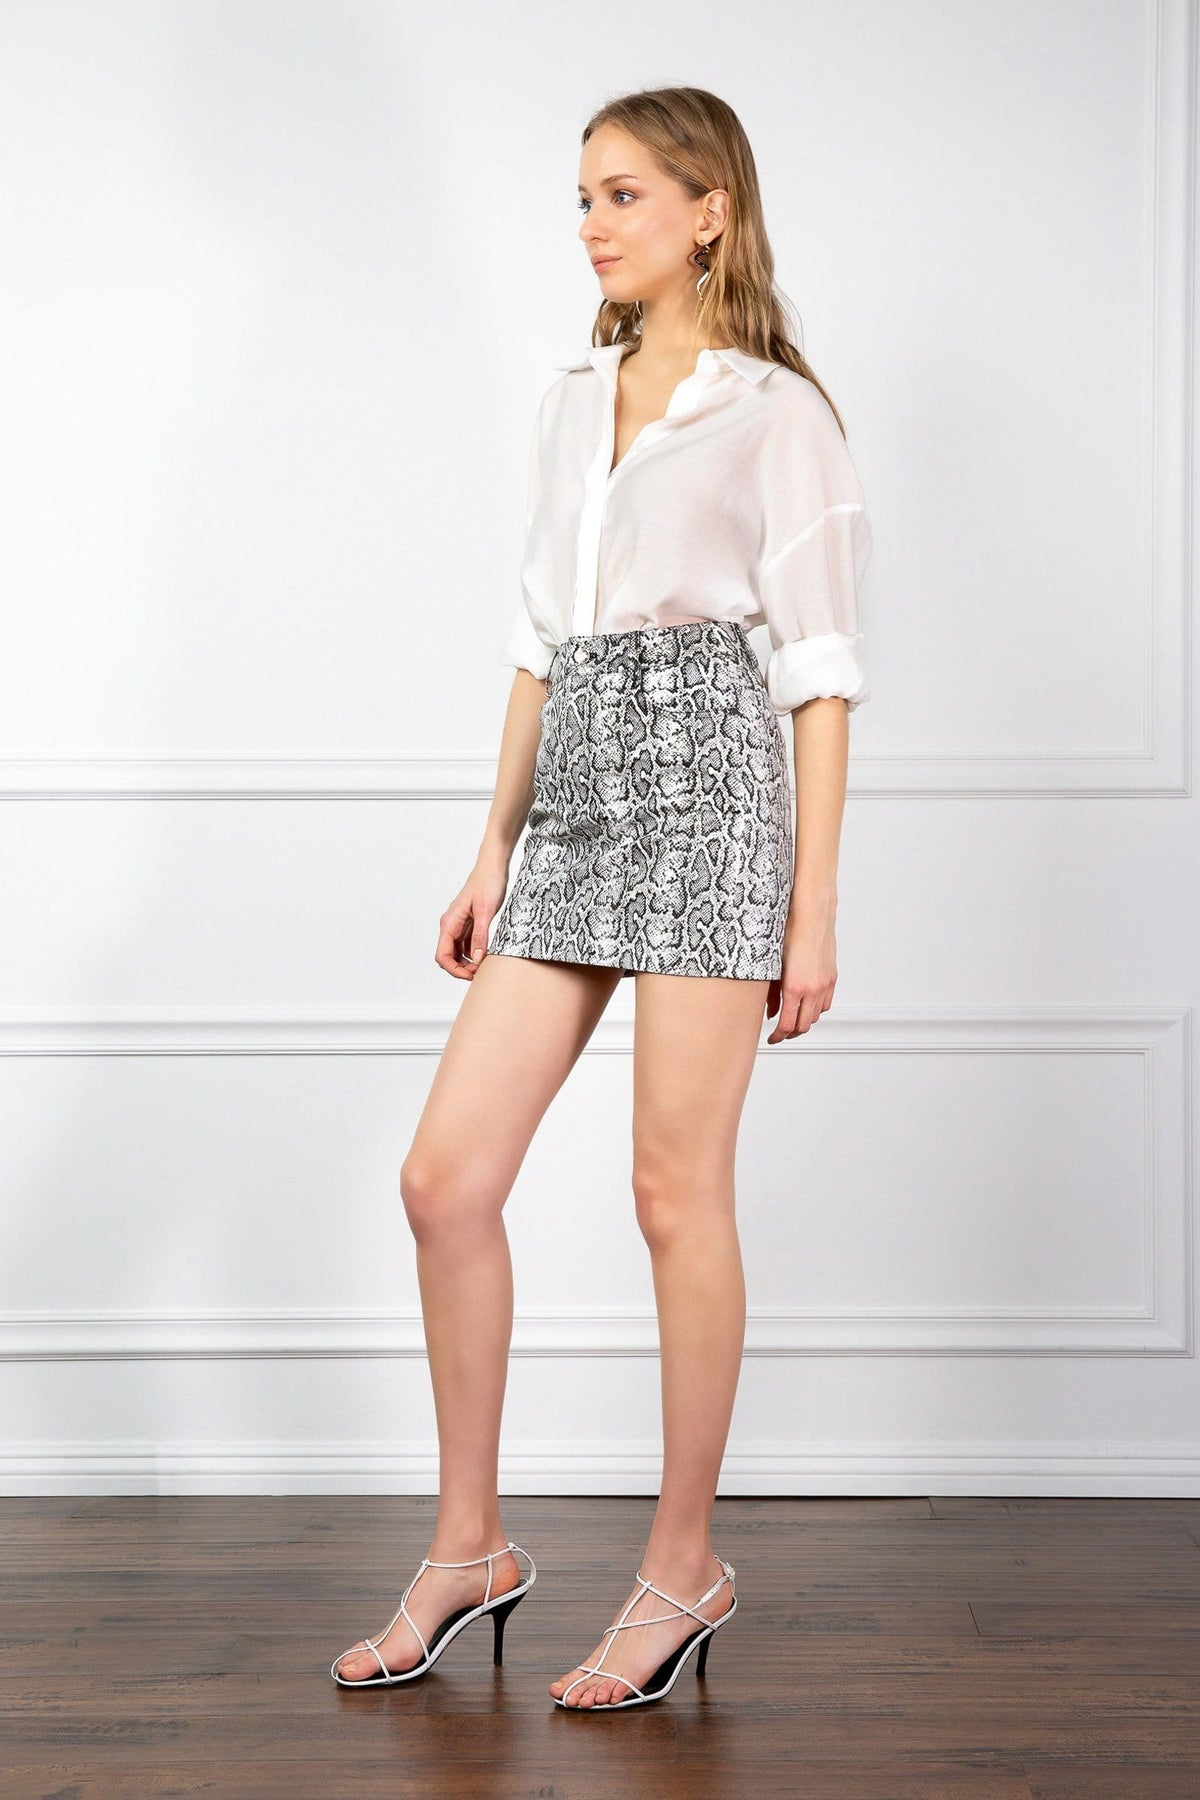 Grey Snake Print Mini Skirt by J.ING US fashion